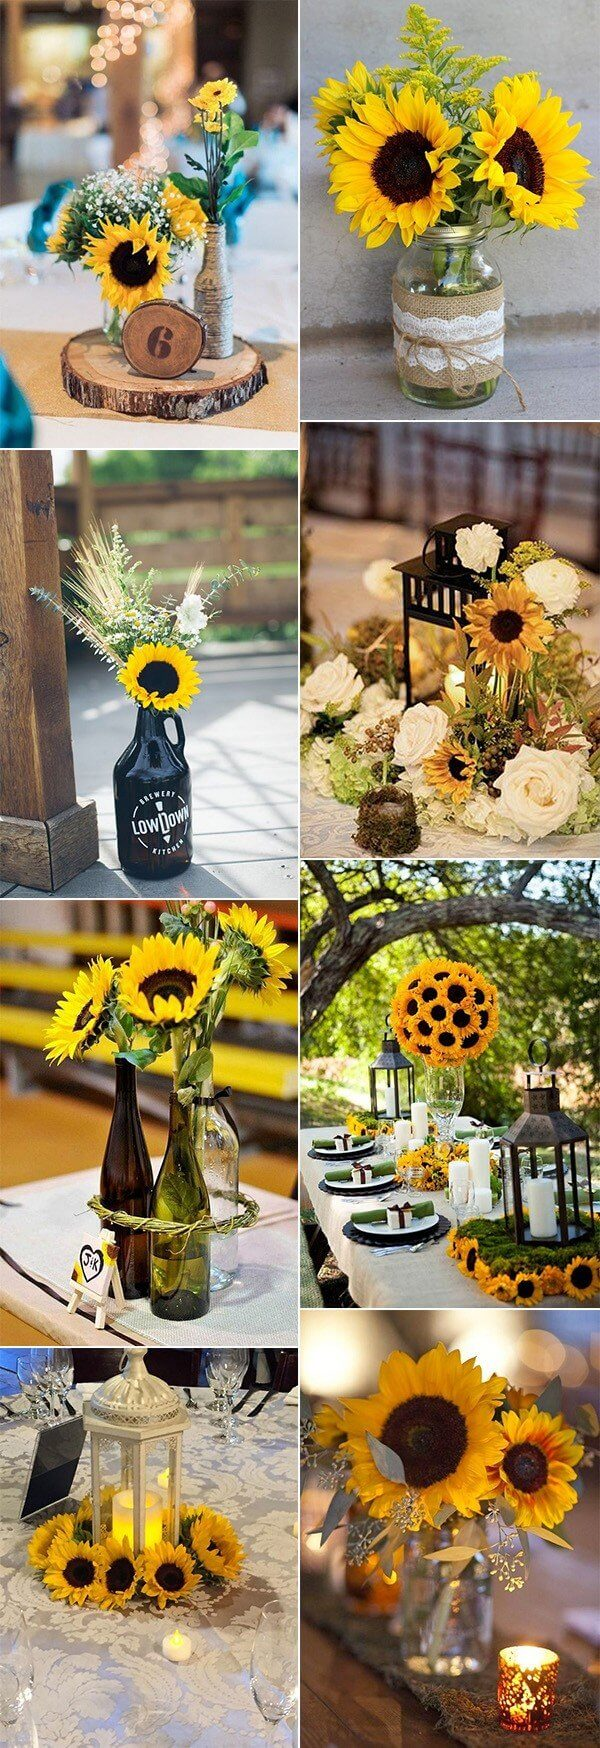 Sunflower Wedding Centerpiece Ideas | Creative & Rustic Backyard Wedding Ideas For Summer & Fall